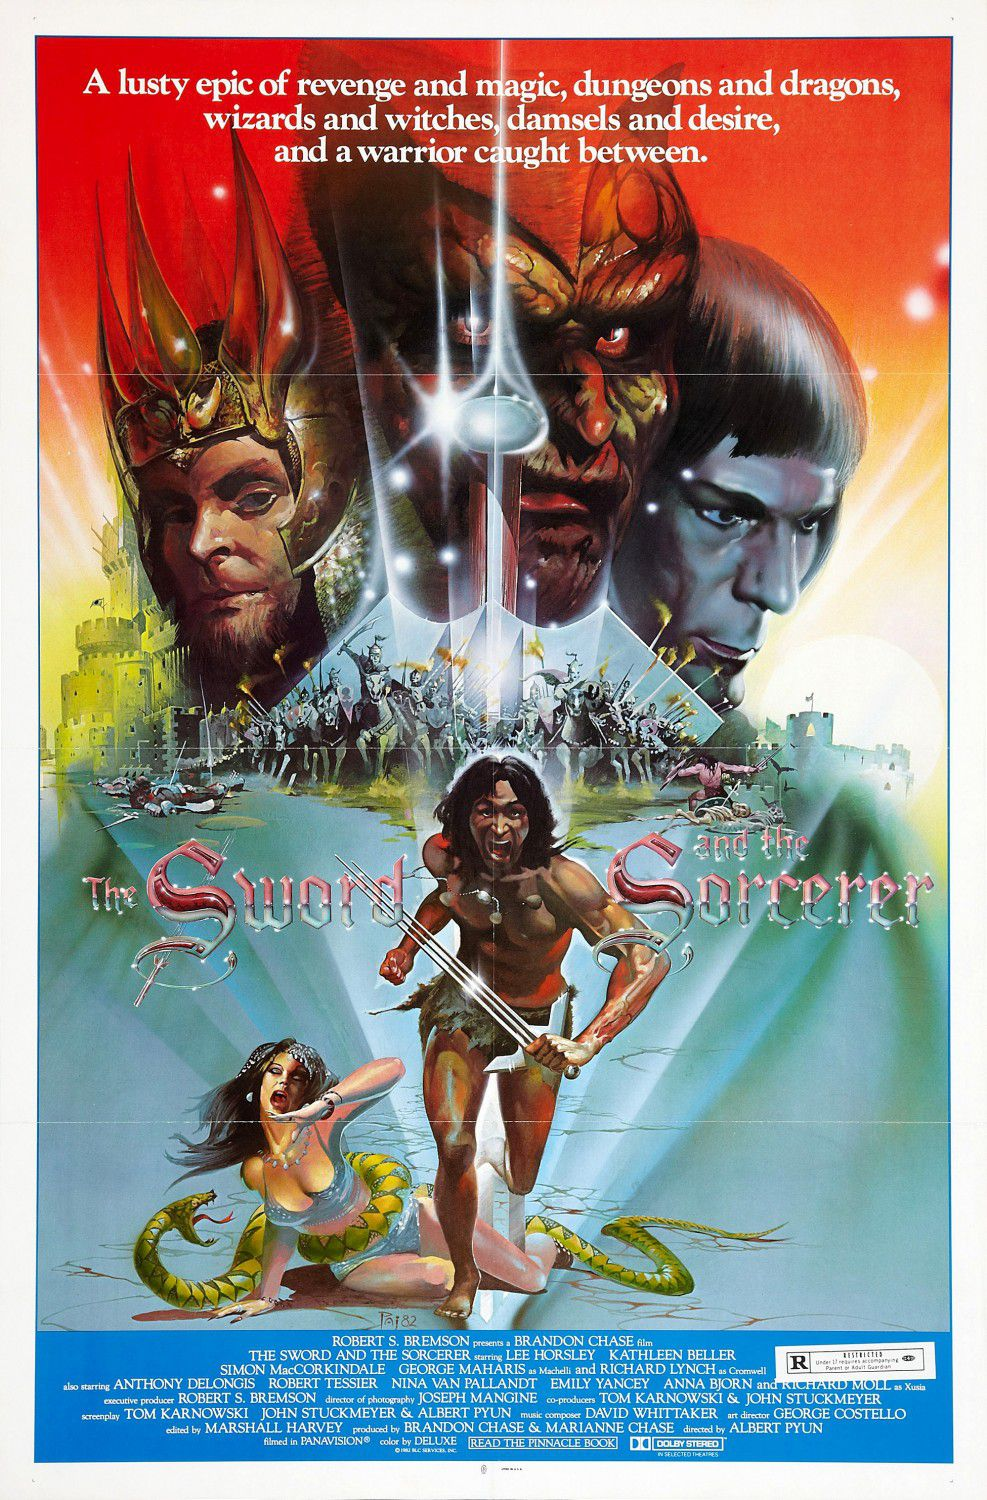 Sword and the Sorcerer(1982) - Cast: Lee Horsley, Richard Lynch, Kathleen Beller, Simon MacCorkindale - fantasy film cult classic poster 80s